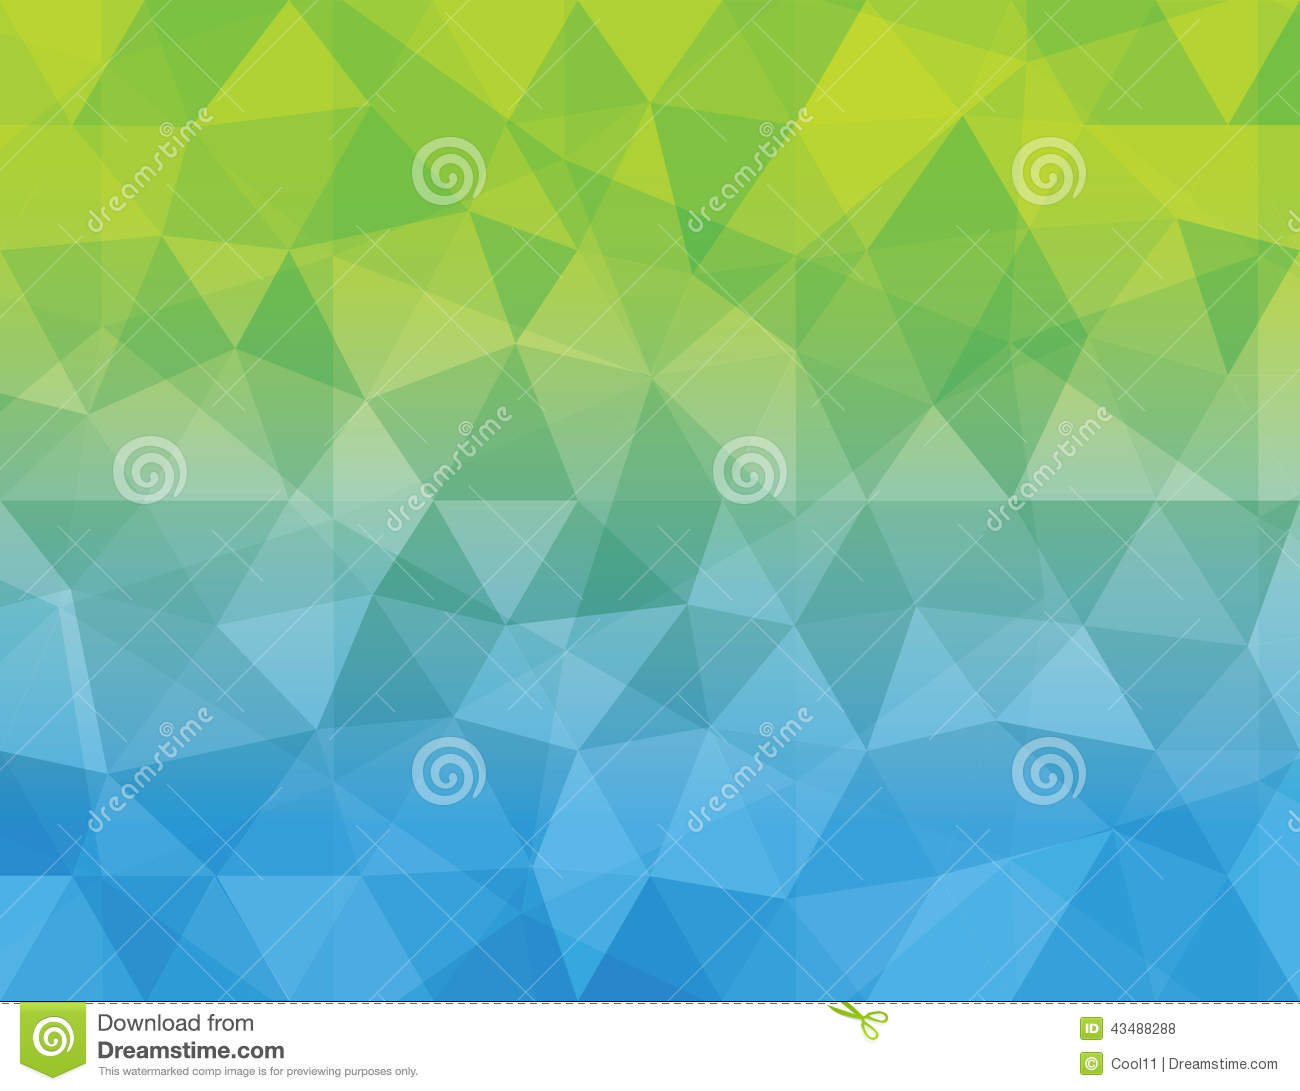 Blue and green pattern wallpaper - photo#34